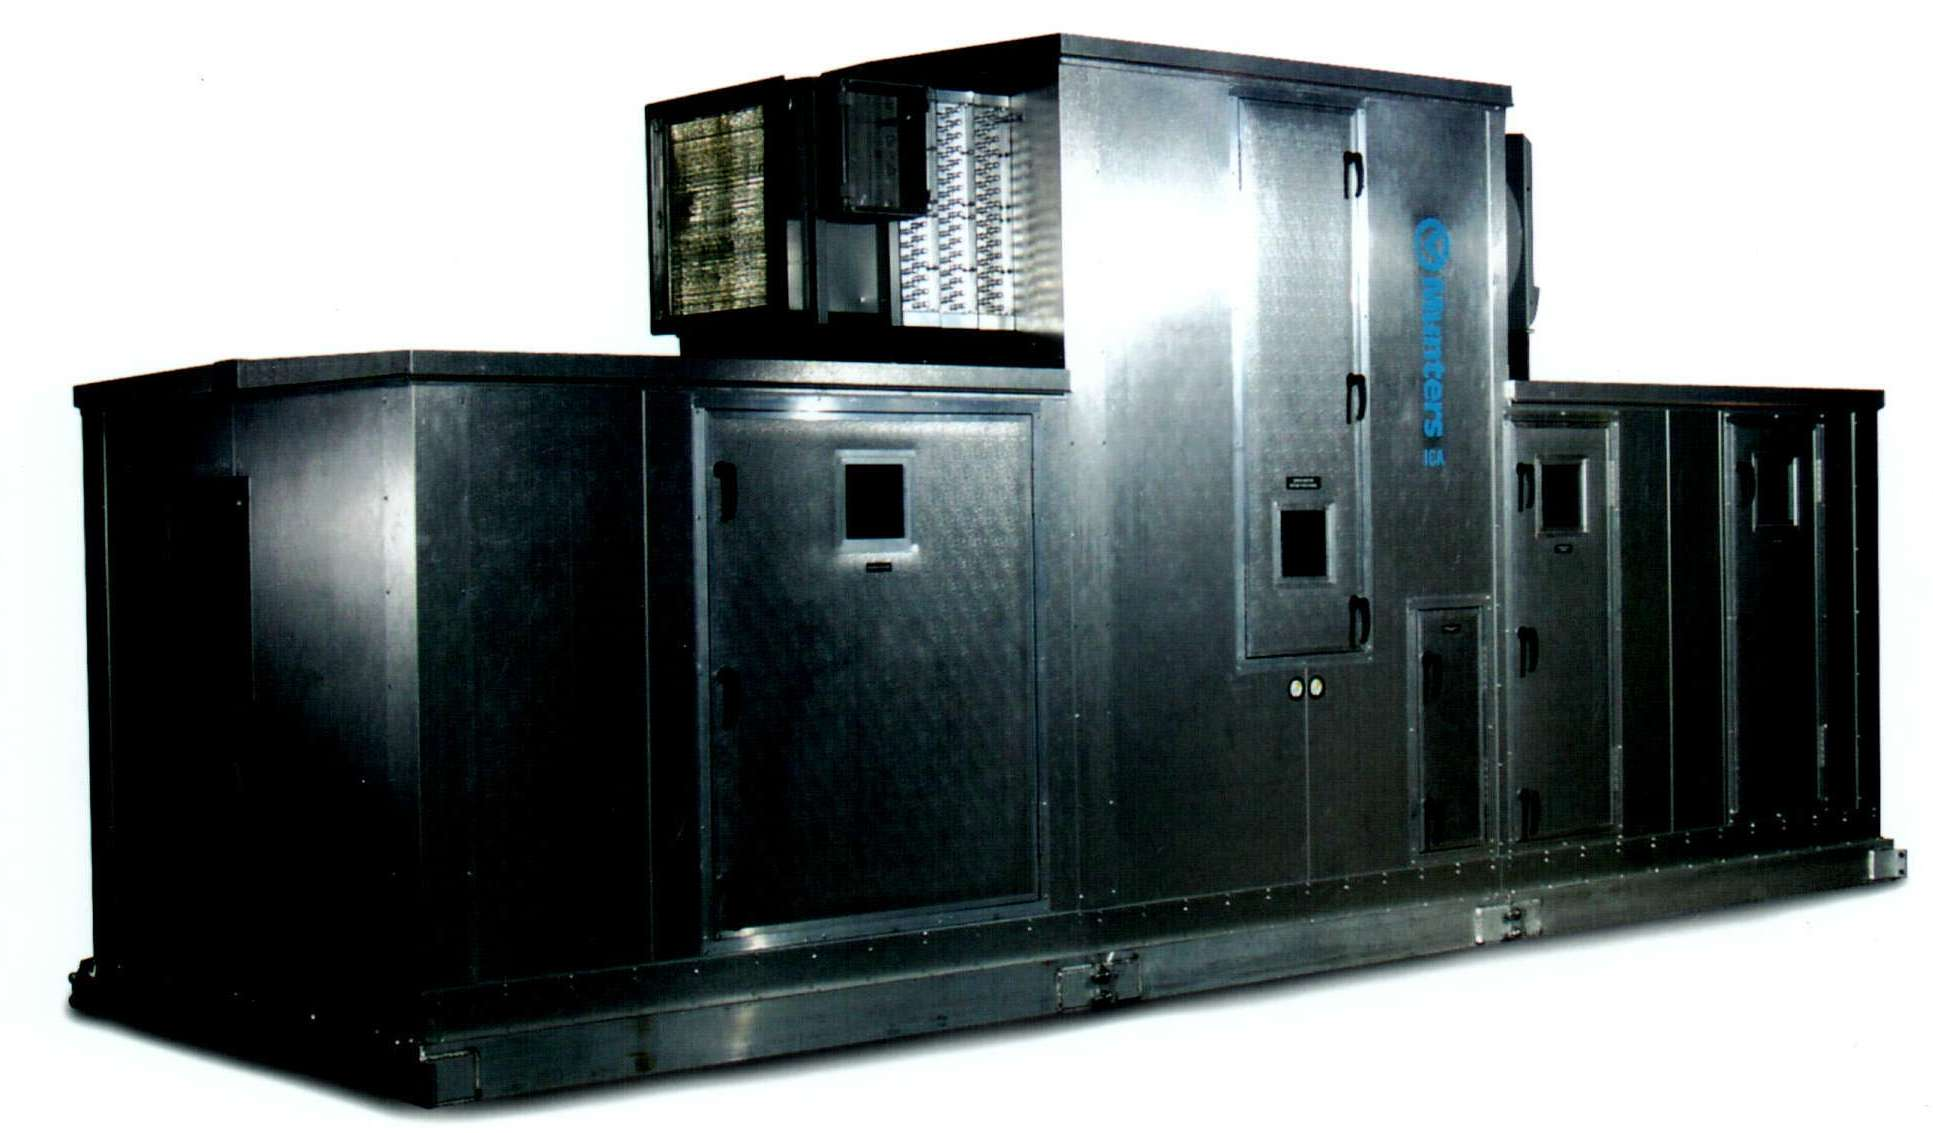 Trane Xv95 Furnace Wiring Diagram likewise 4 Ton Trane Heat Pump For Sale in addition Trane Xr90 Wiring Diagram further Specifications Of Air Handling Units also Trane Xr90 Wiring Diagram. on trane cleaneffects wiring diagram